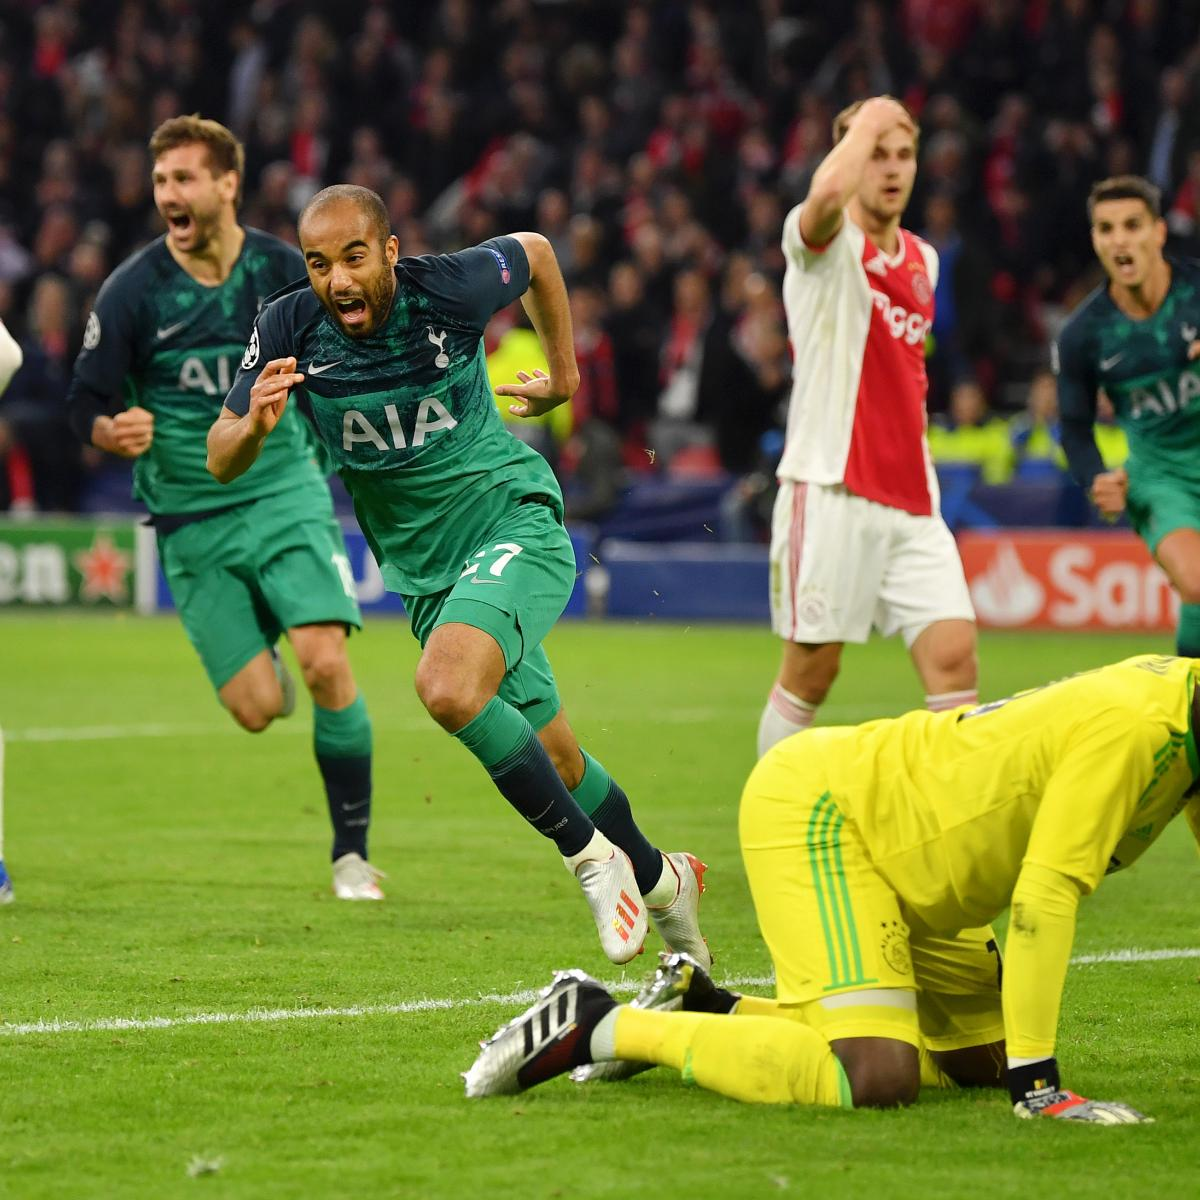 Tottenham Vs Ajax Tickets Away End: Lucas Moura's Hat Trick Stuns Ajax, Leads Tottenham To UCL